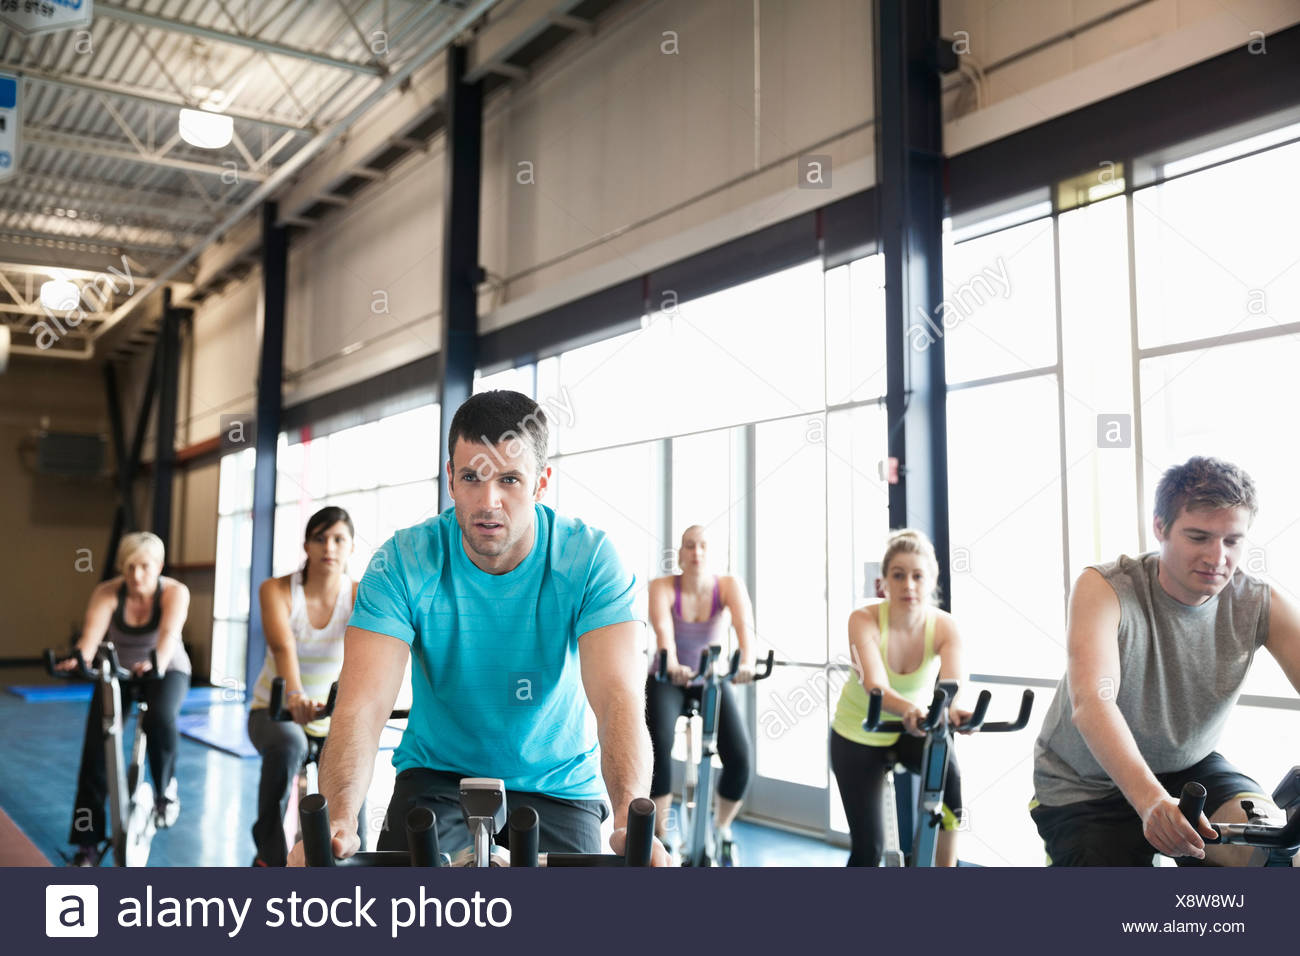 People exercising on stationary bikes in fitness class - Stock Image